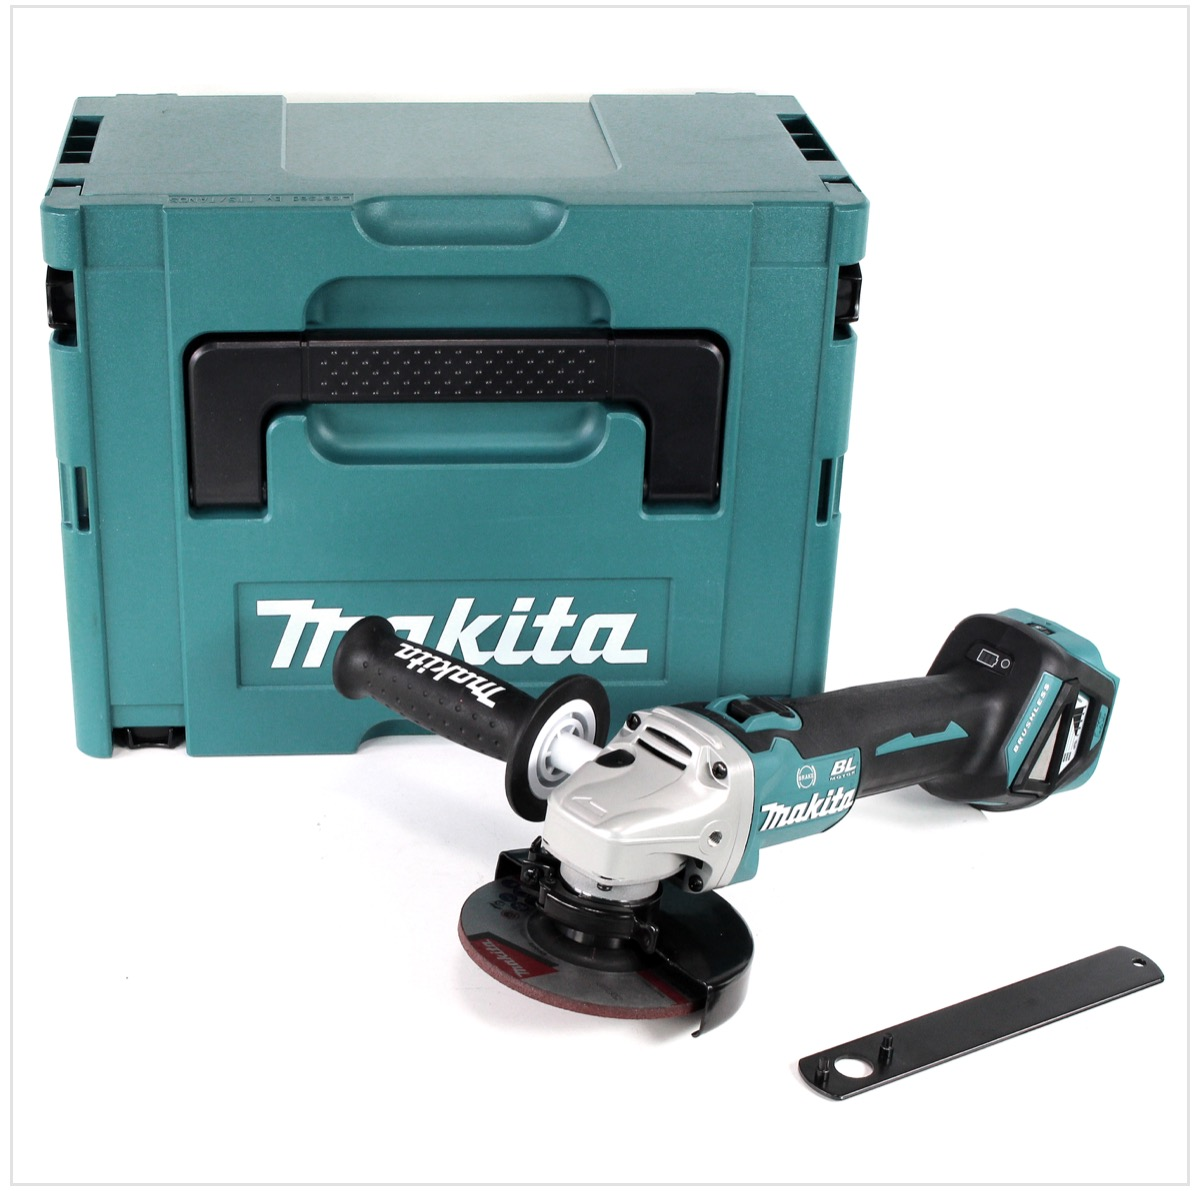 makita dga 513 zj akku winkelschleifer 18v brushless 125mm solo im makpac ohne akku ohne. Black Bedroom Furniture Sets. Home Design Ideas